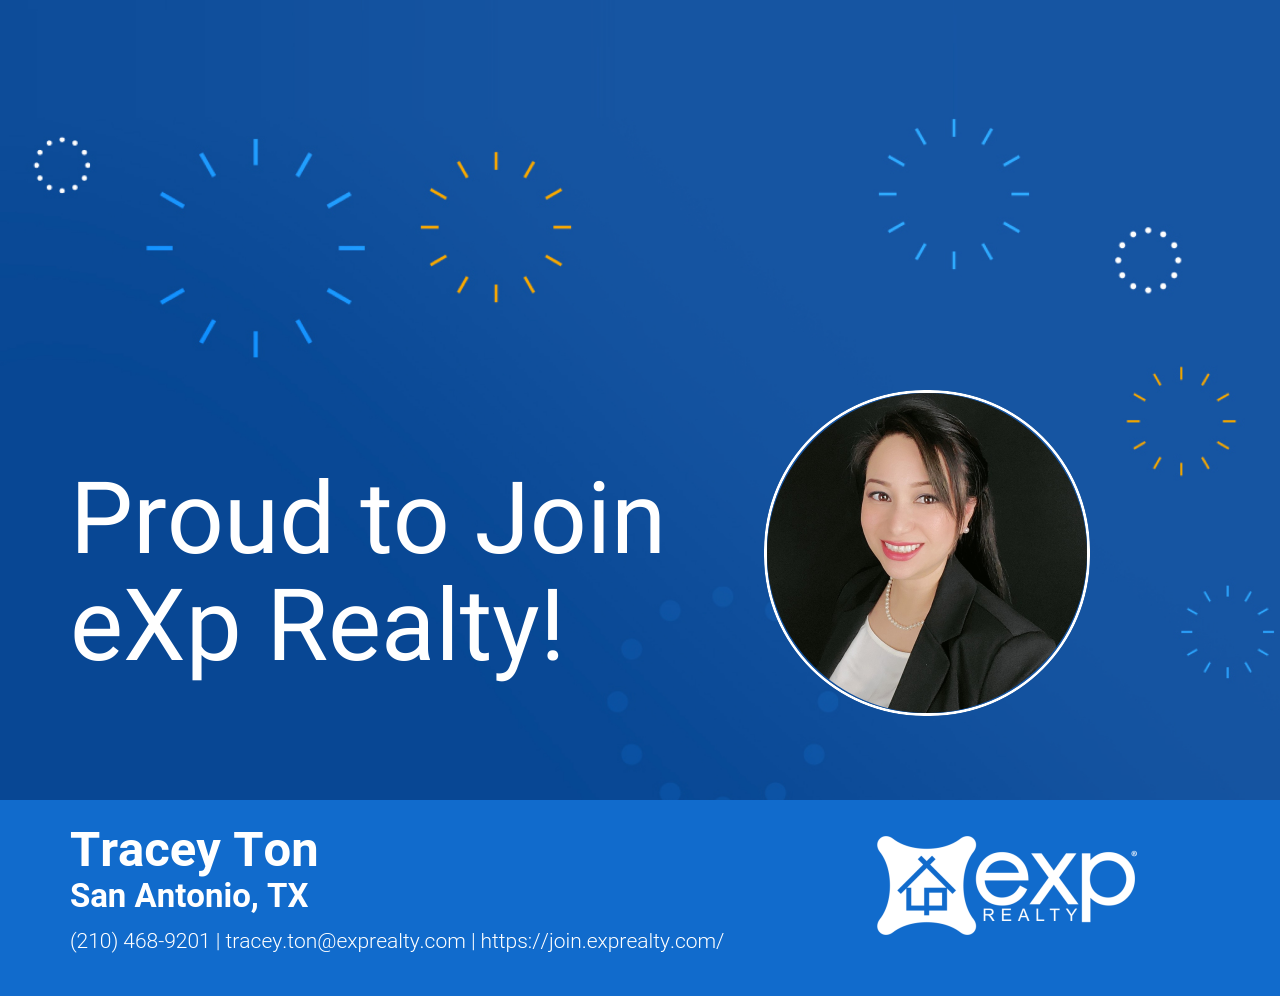 Tracey Ton Joined eXp Realty!